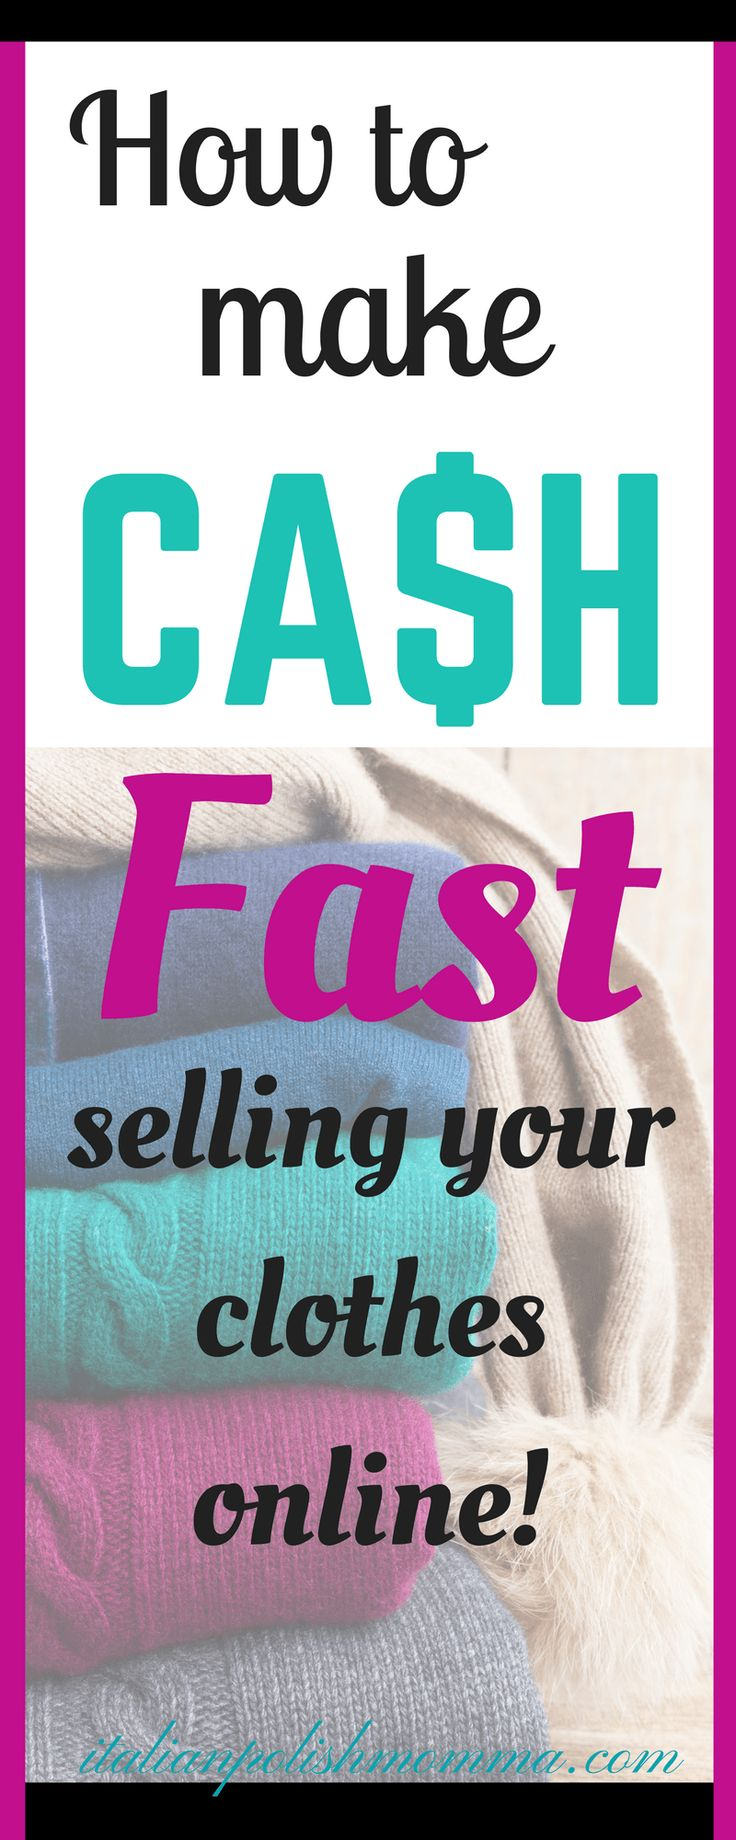 Want to make cash fast? Here are tips on making money online by selling your clothes & cleaning out those closets!